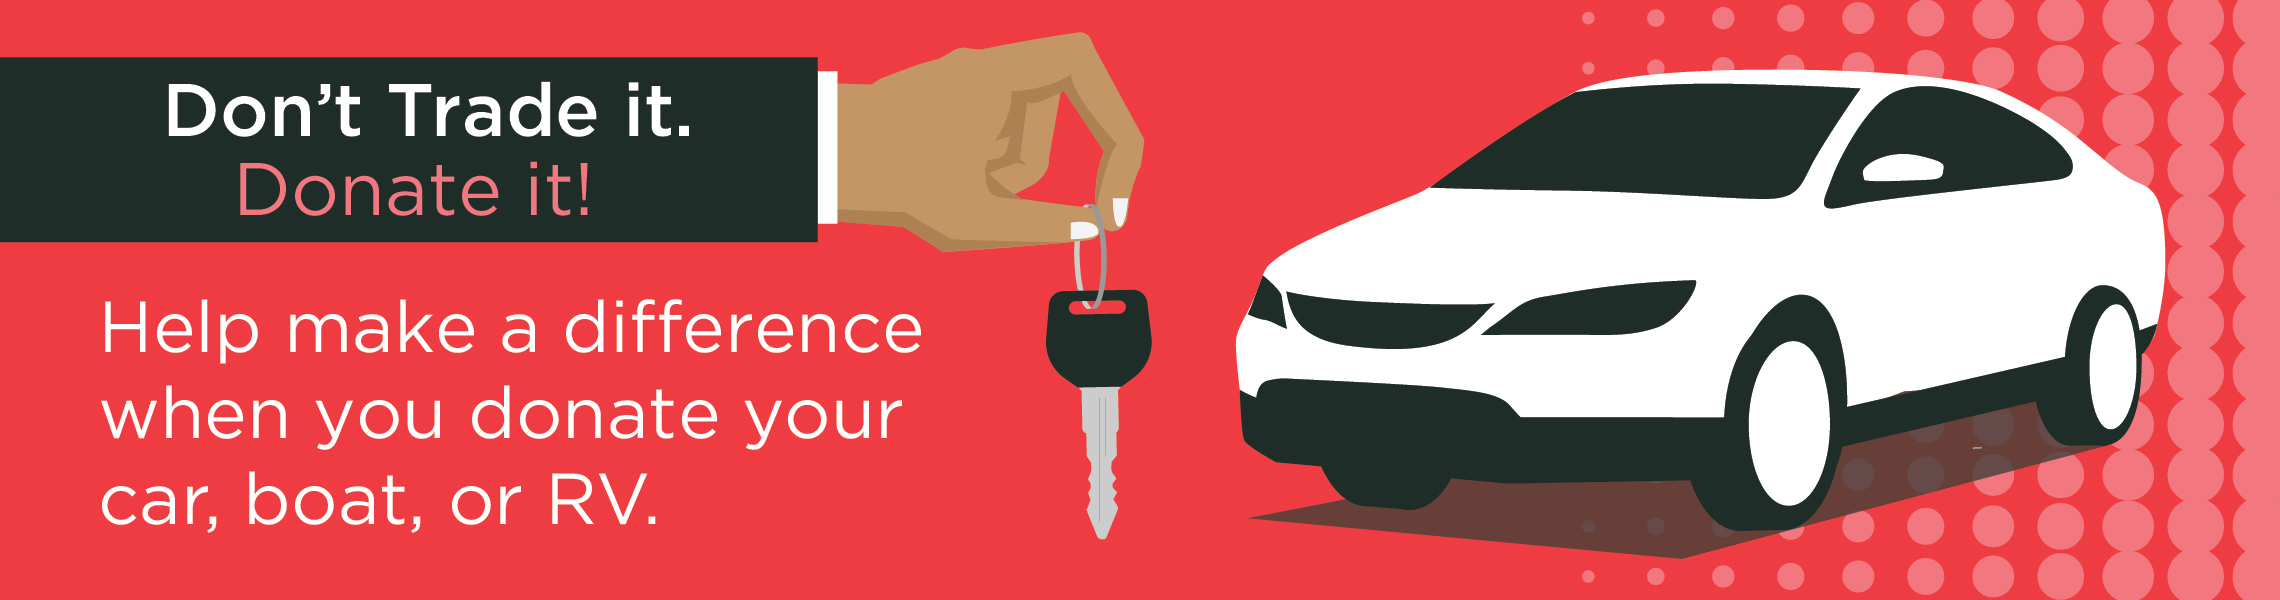 "Vector of a woman's hand holding car keys with a car in the background with the words ""Don't trade it, donate it"""